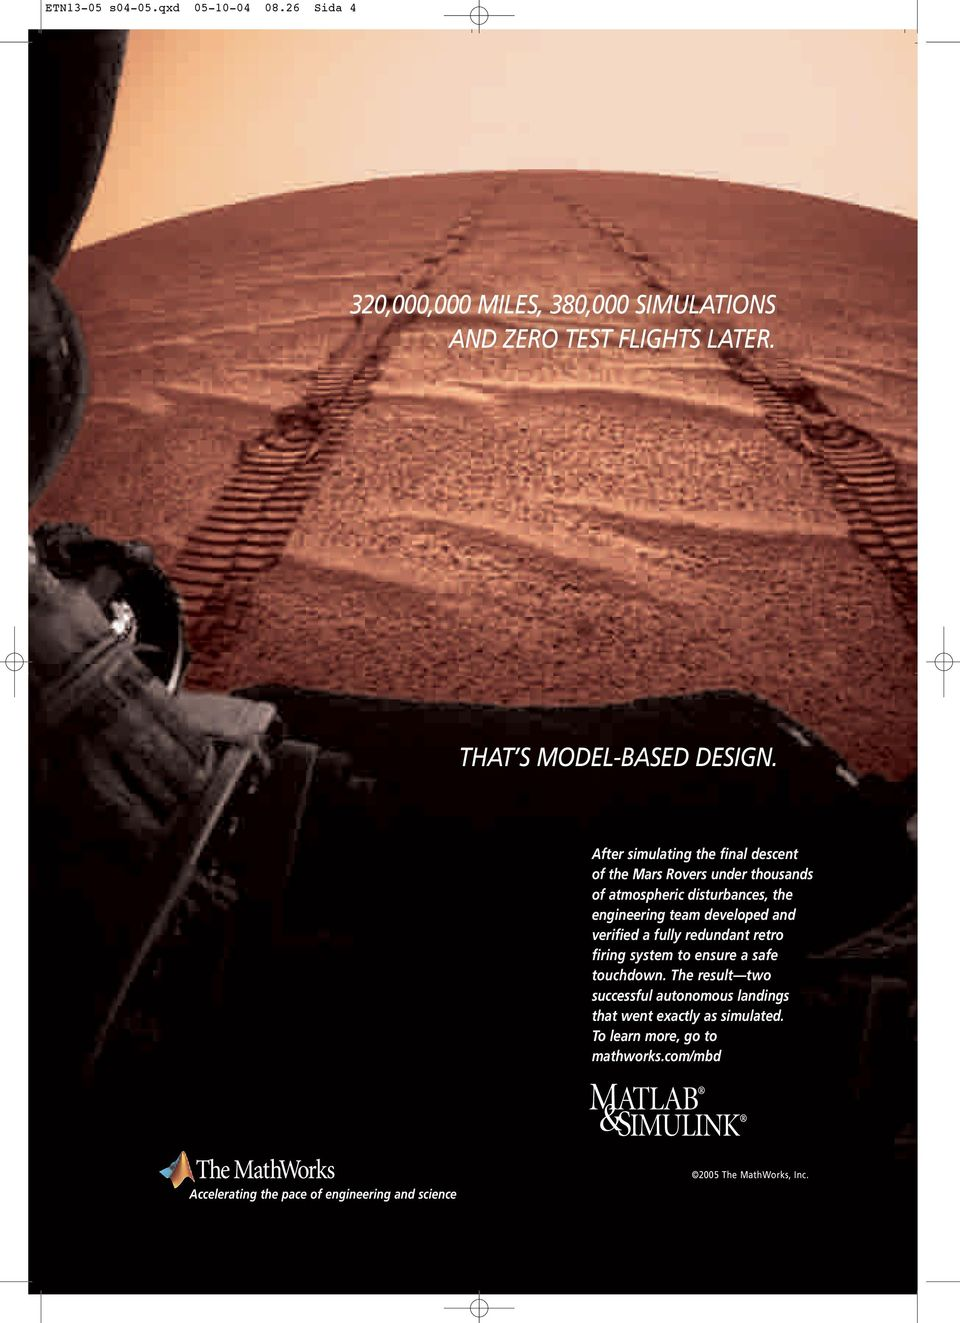 After simulating the final descent of the Mars Rovers under thousands of atmospheric disturbances, the engineering team developed and